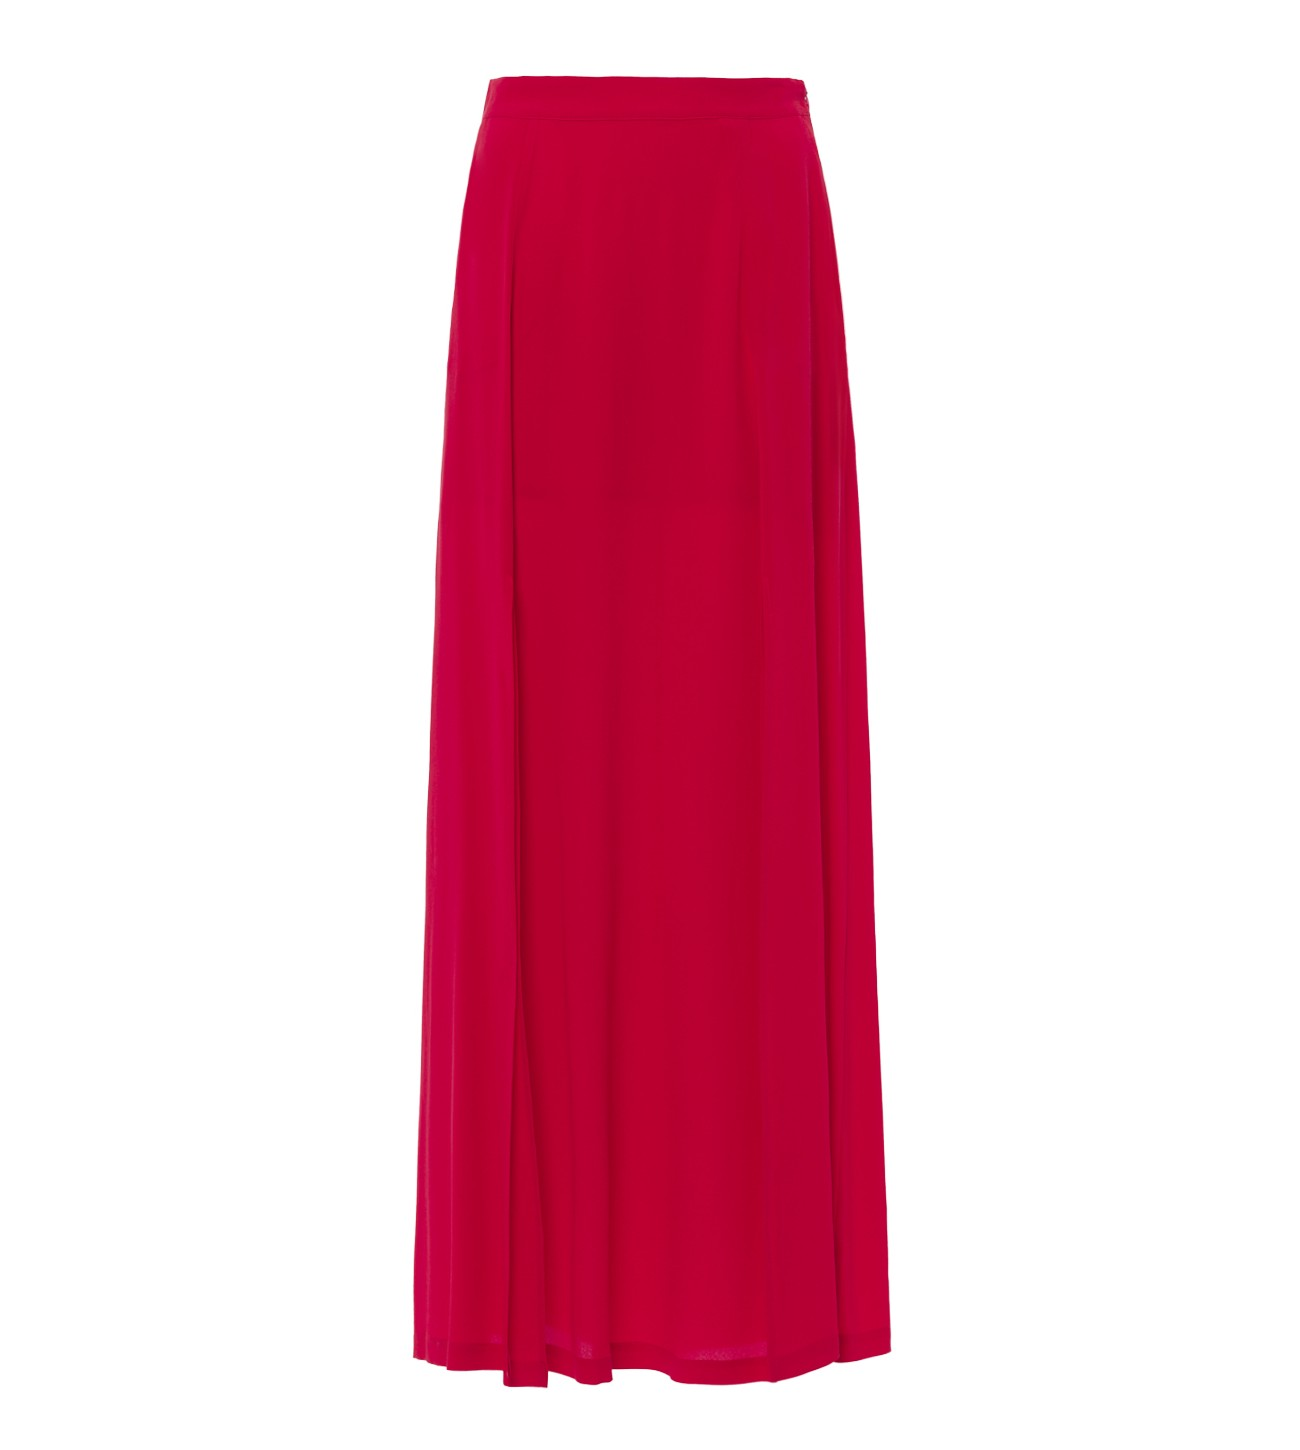 SEMICOUTURE_LONG_SKIRT_WITH_OPENINGS_MARIONA_FASHION_CLOTHING_WOMAN_SHOP_ONLINE_Y9PU15